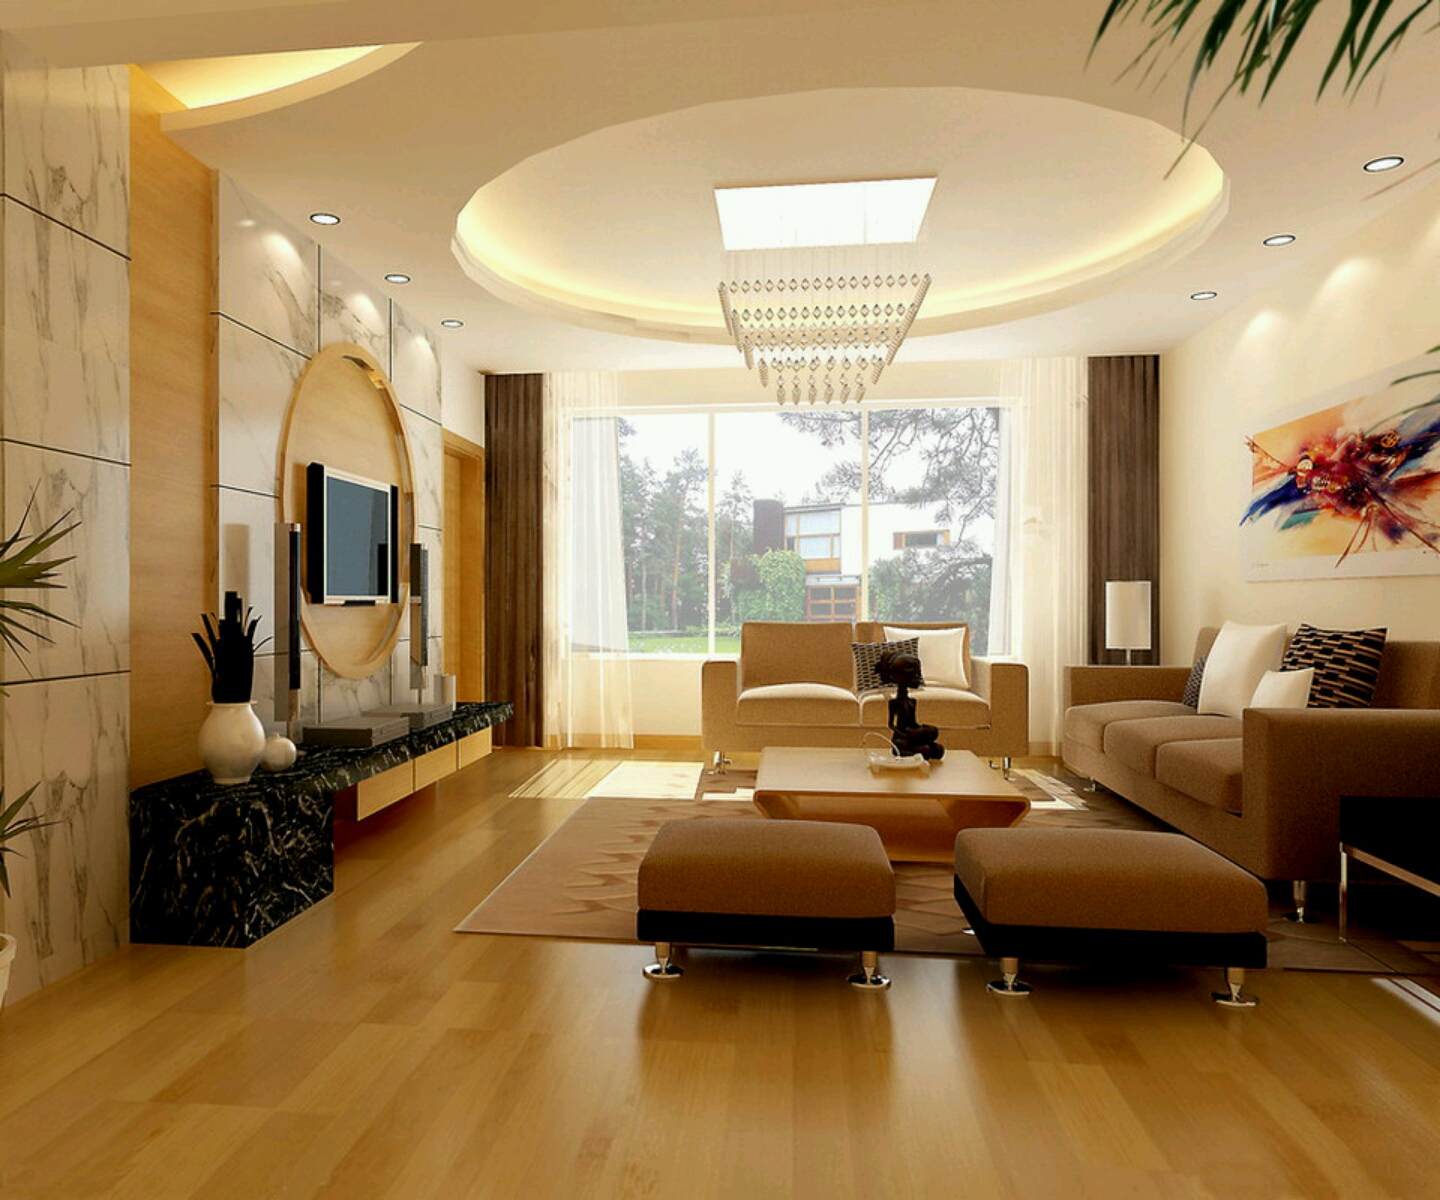 Modern interior decoration living rooms ceiling designs for Contemporary interior design ideas for living rooms